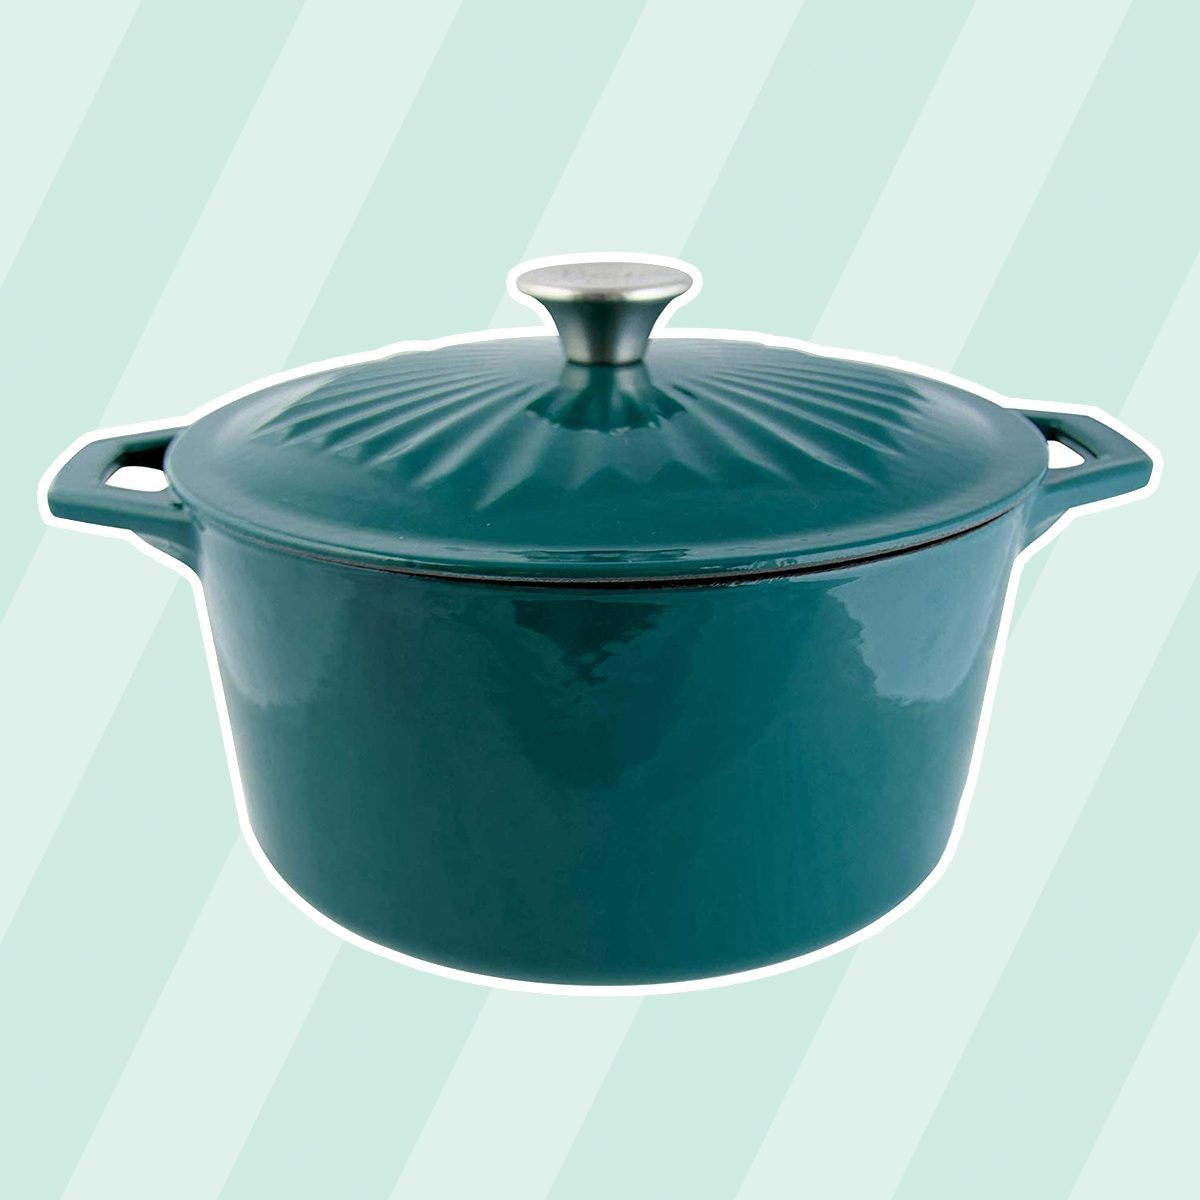 Taste of Home 5-quart Enameled Cast Iron Dutch Oven with Lid